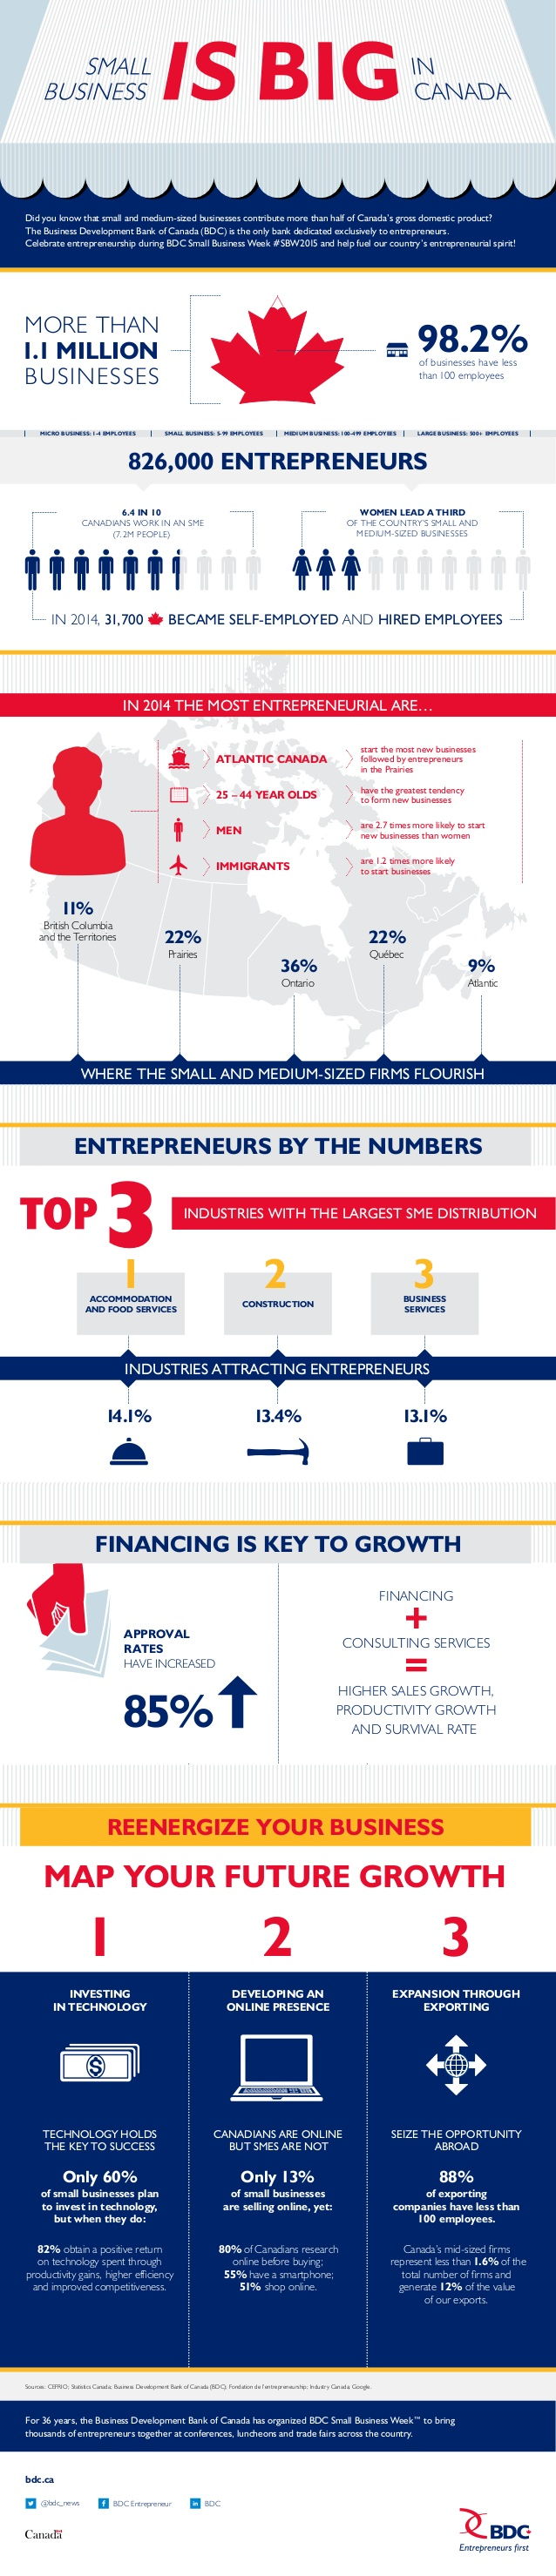 small-business-is-big-in-canada-inforgraphic